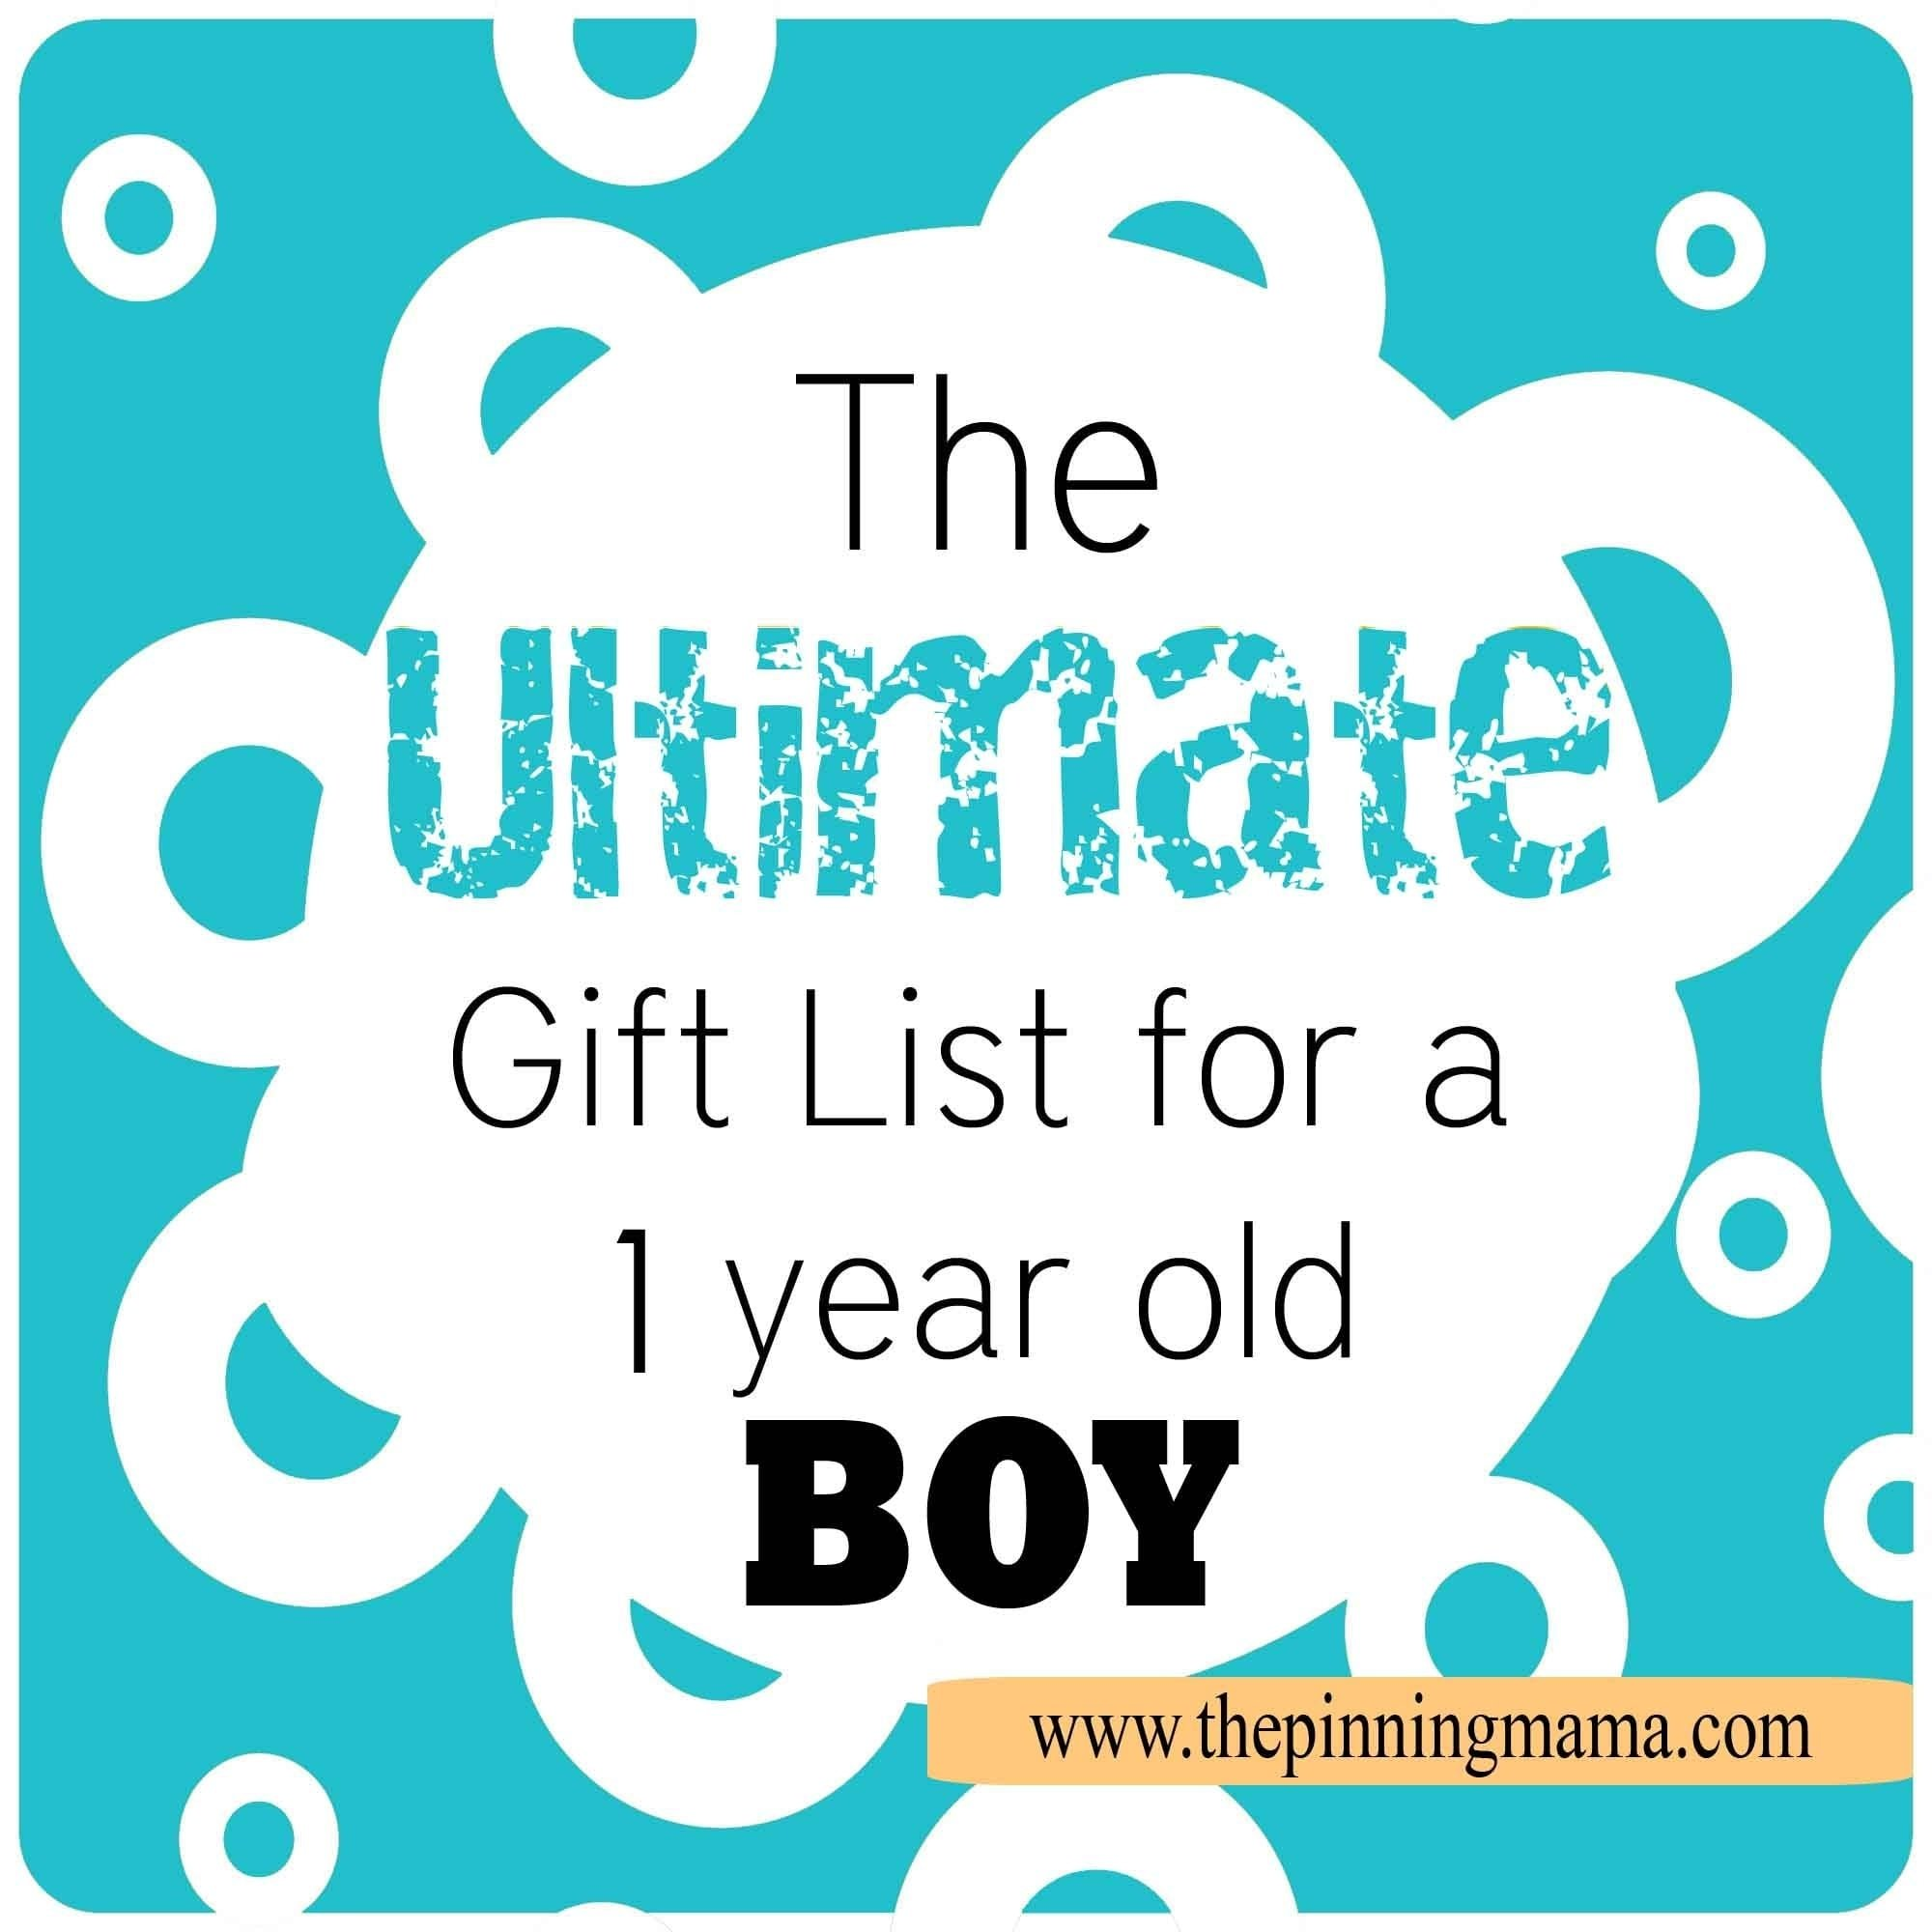 10 Unique Gift Ideas For One Year Old Boy the ultimate gift list for a 1 year old boy e280a2 the pinning mama 6 2020